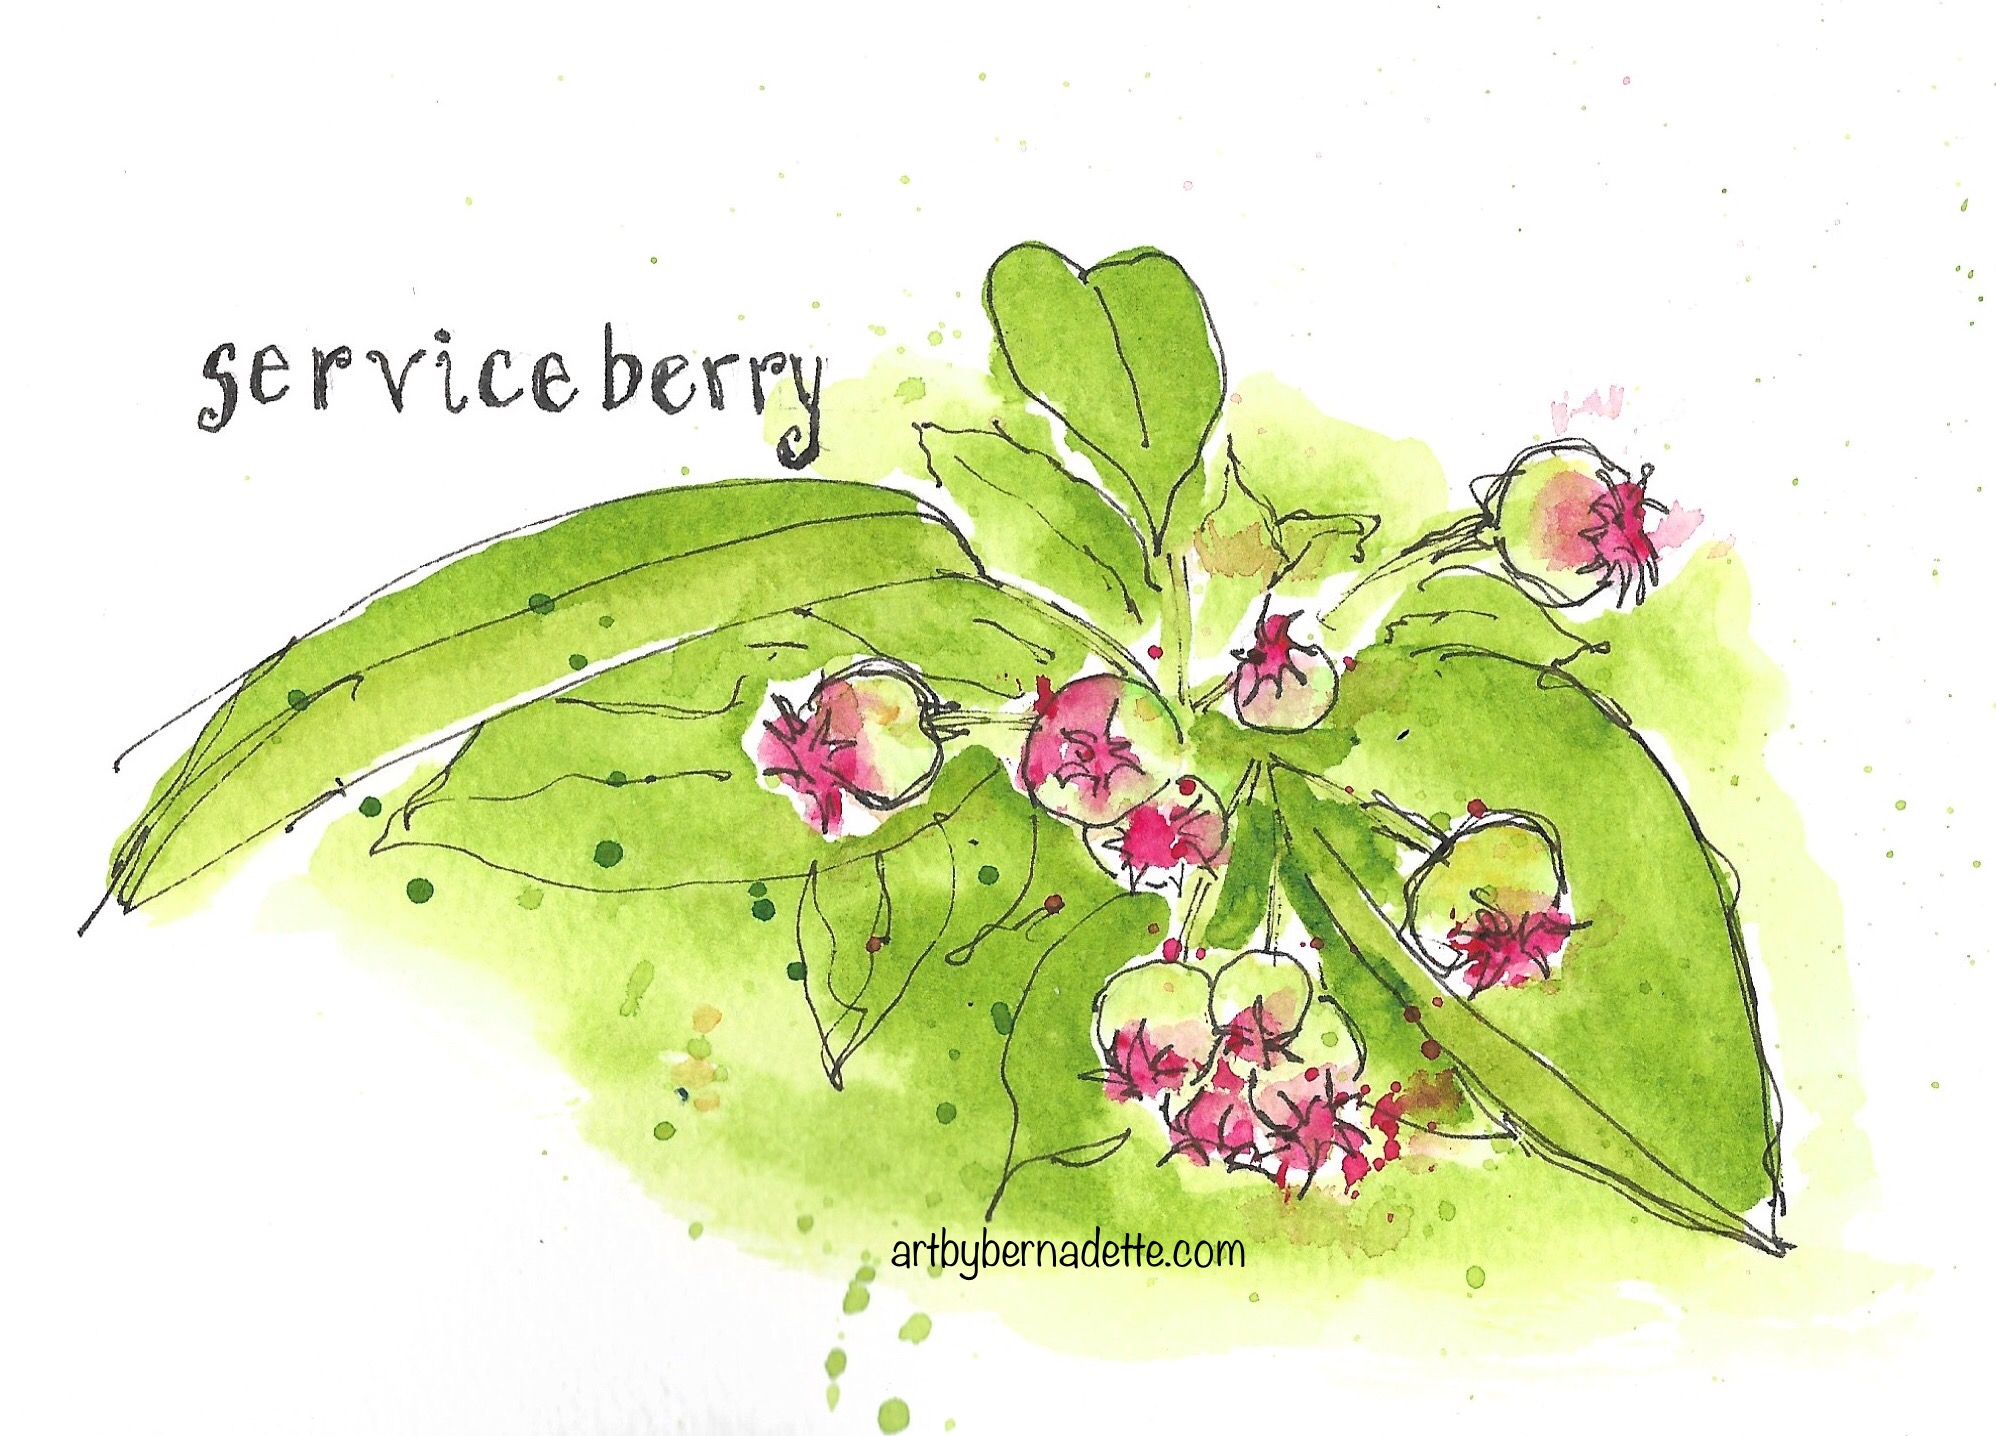 Serviceberry tree